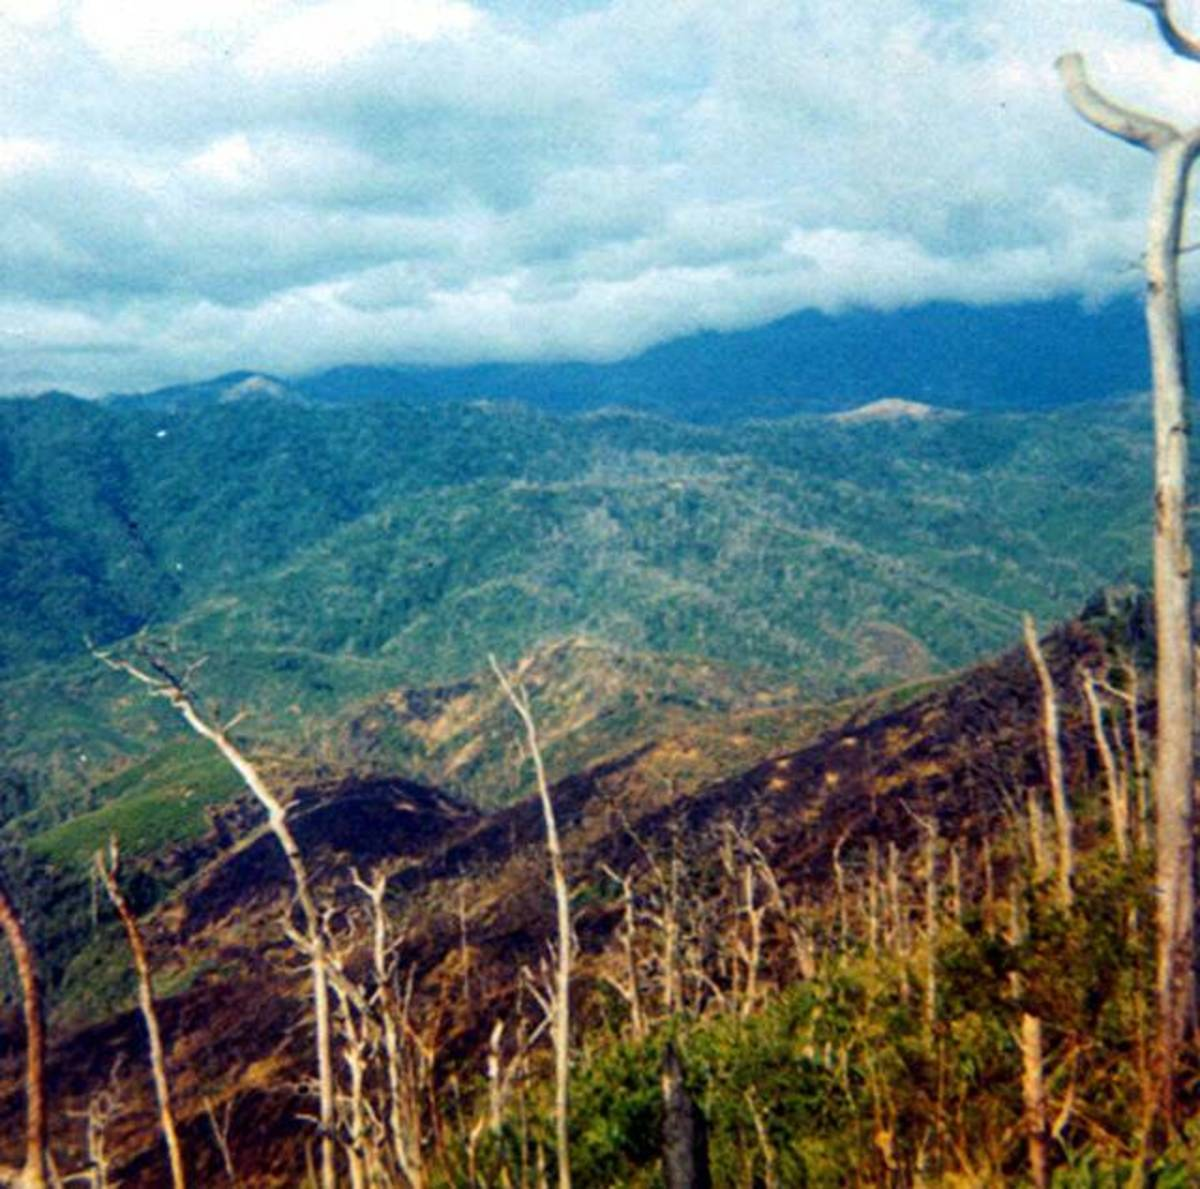 Looking north towards the DMZ from Mutter's Ridge. Signs of battle can be seen in the foreground.